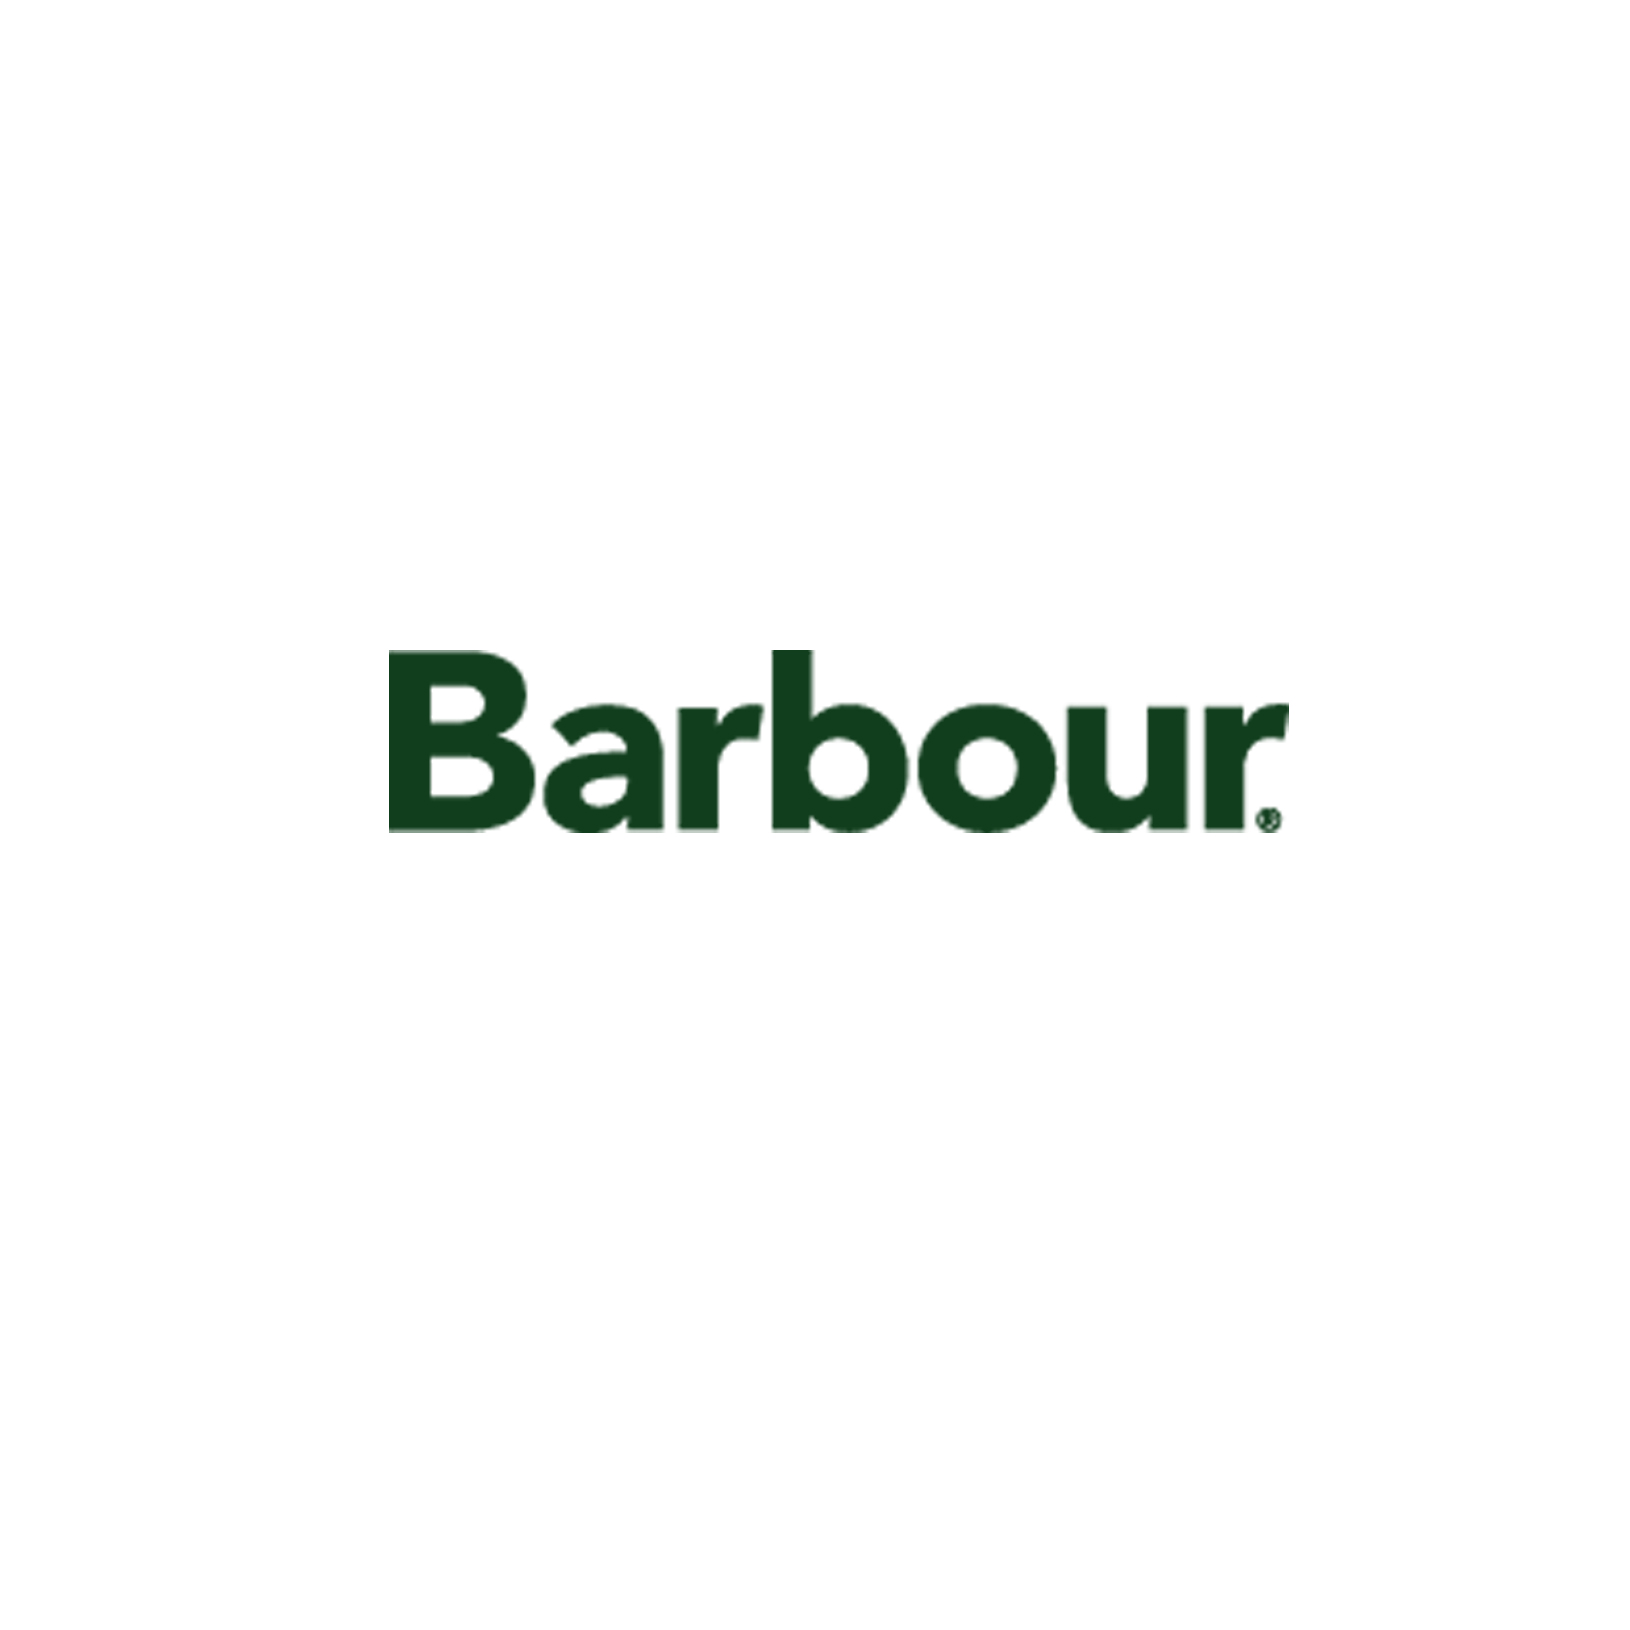 Barbour image 1